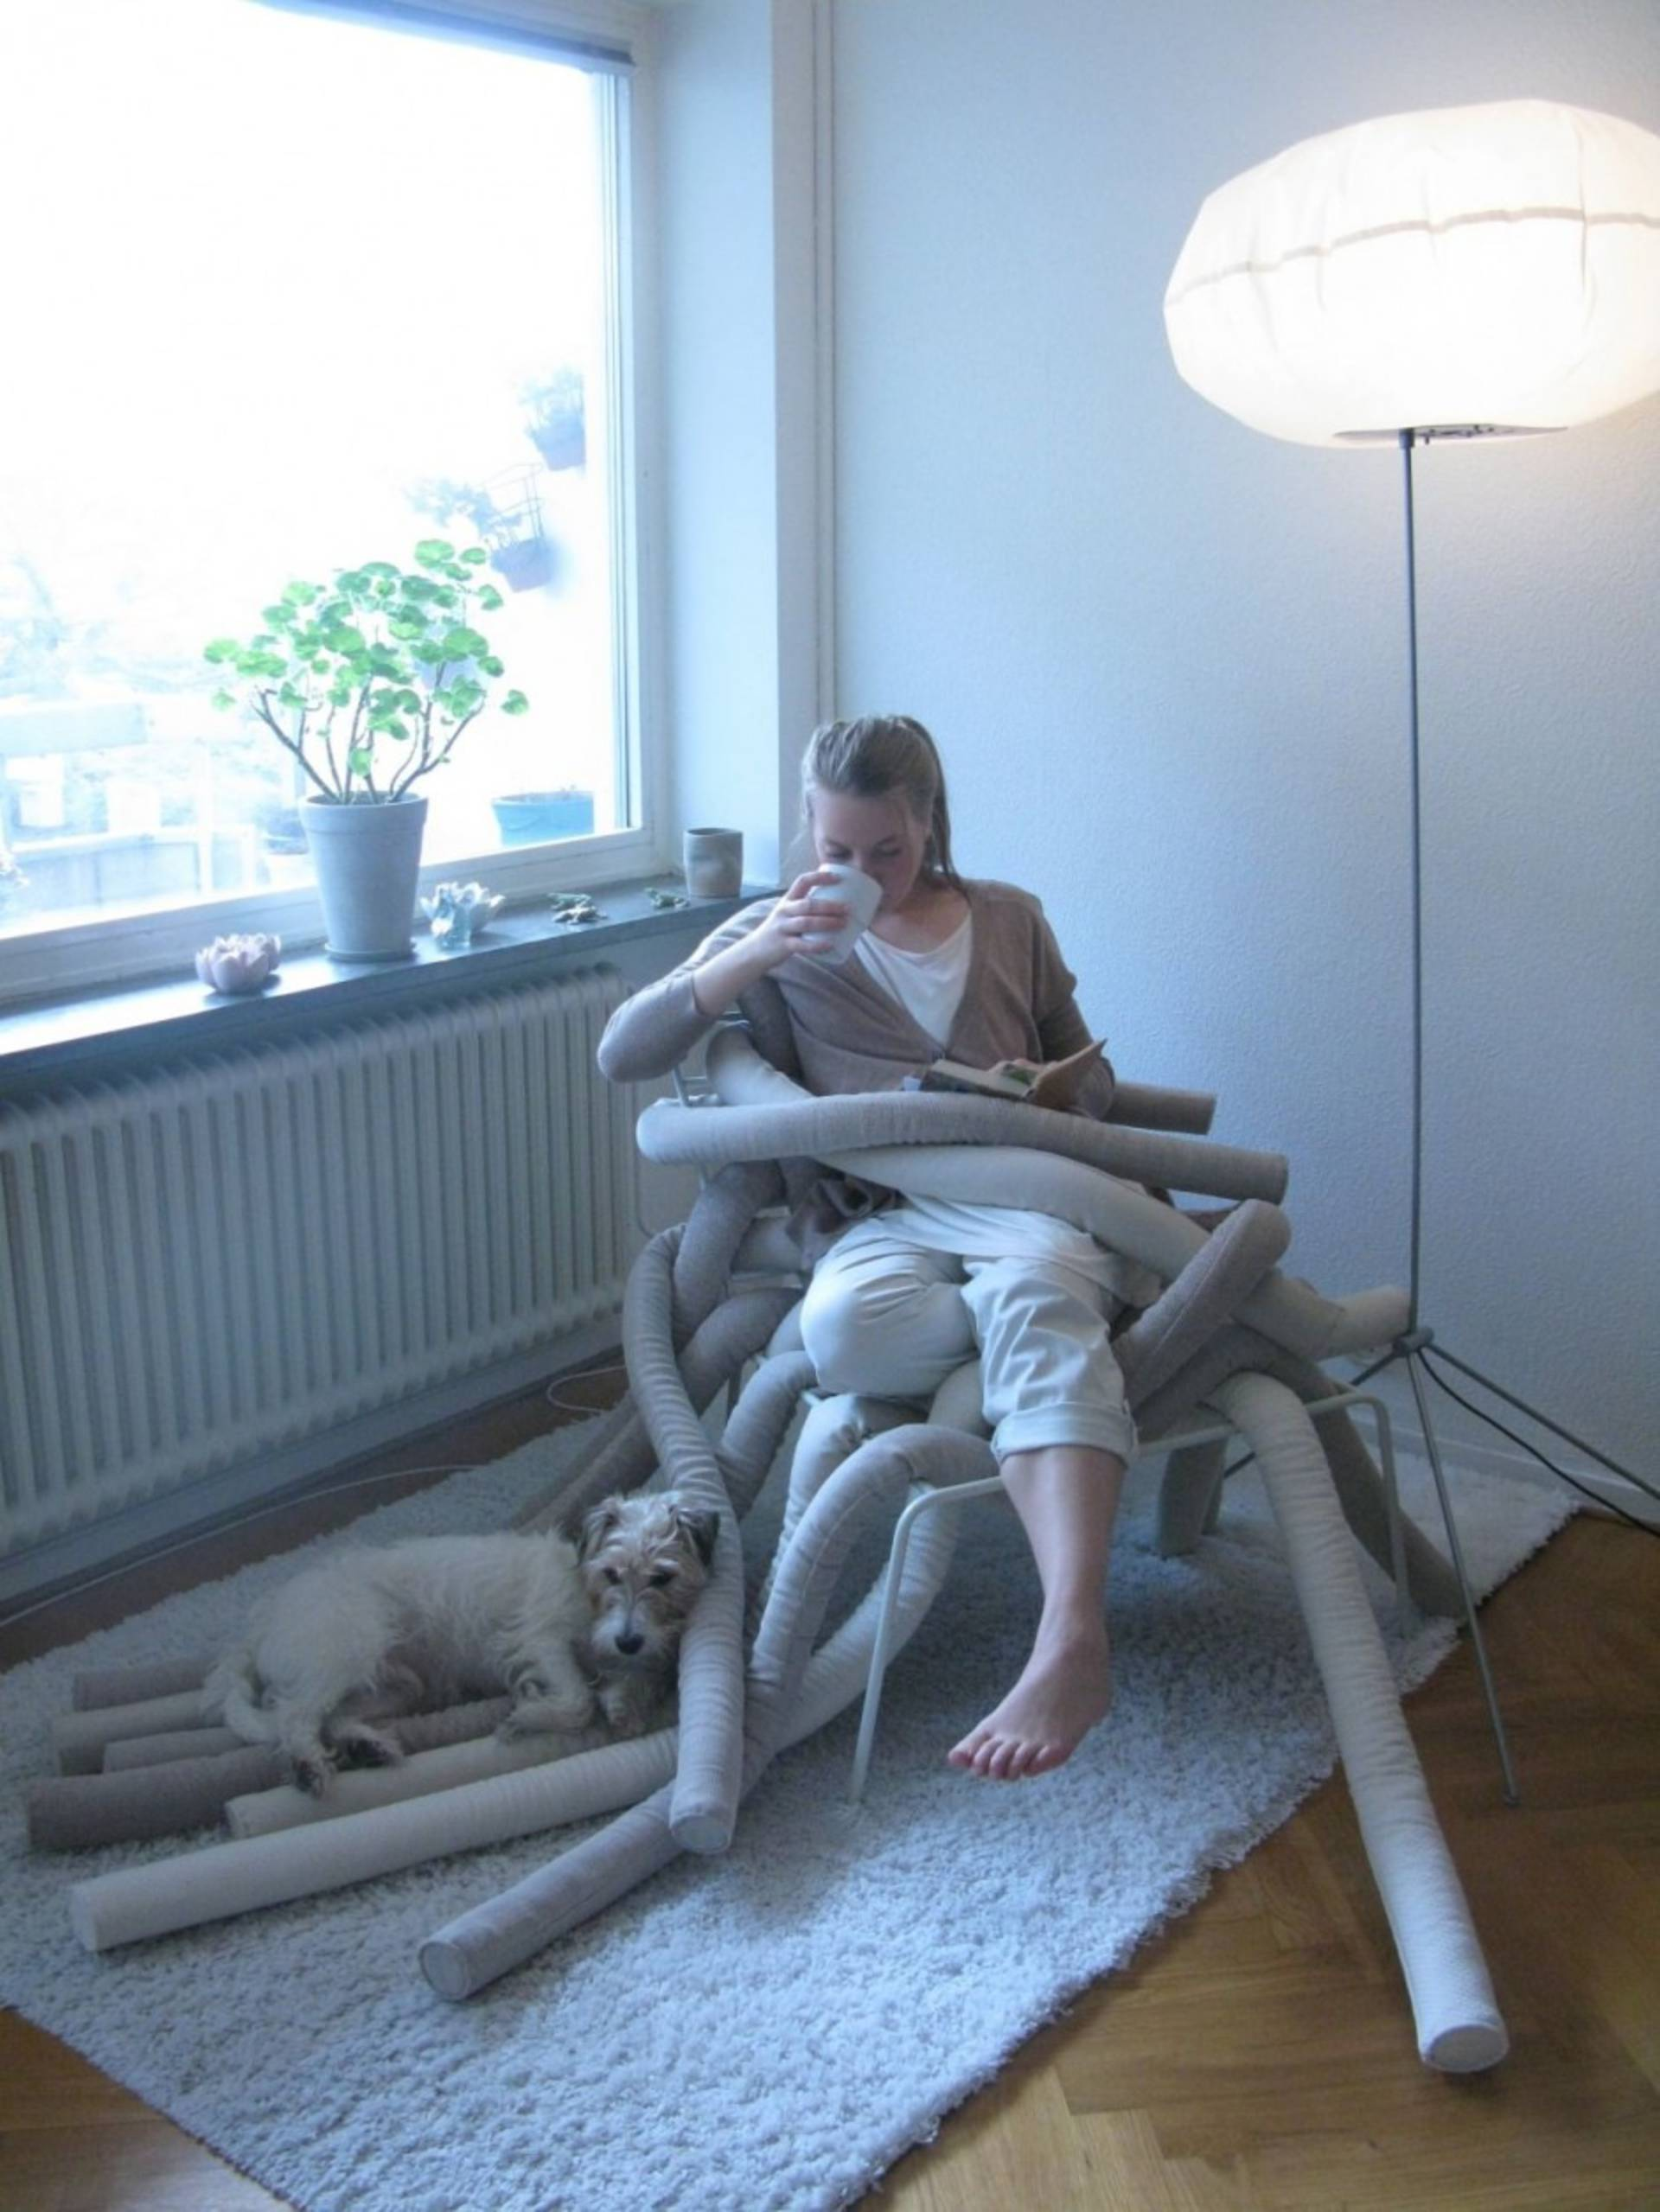 The Tubeme Chair By Ellinor Ericsson Create Your Own Cozy